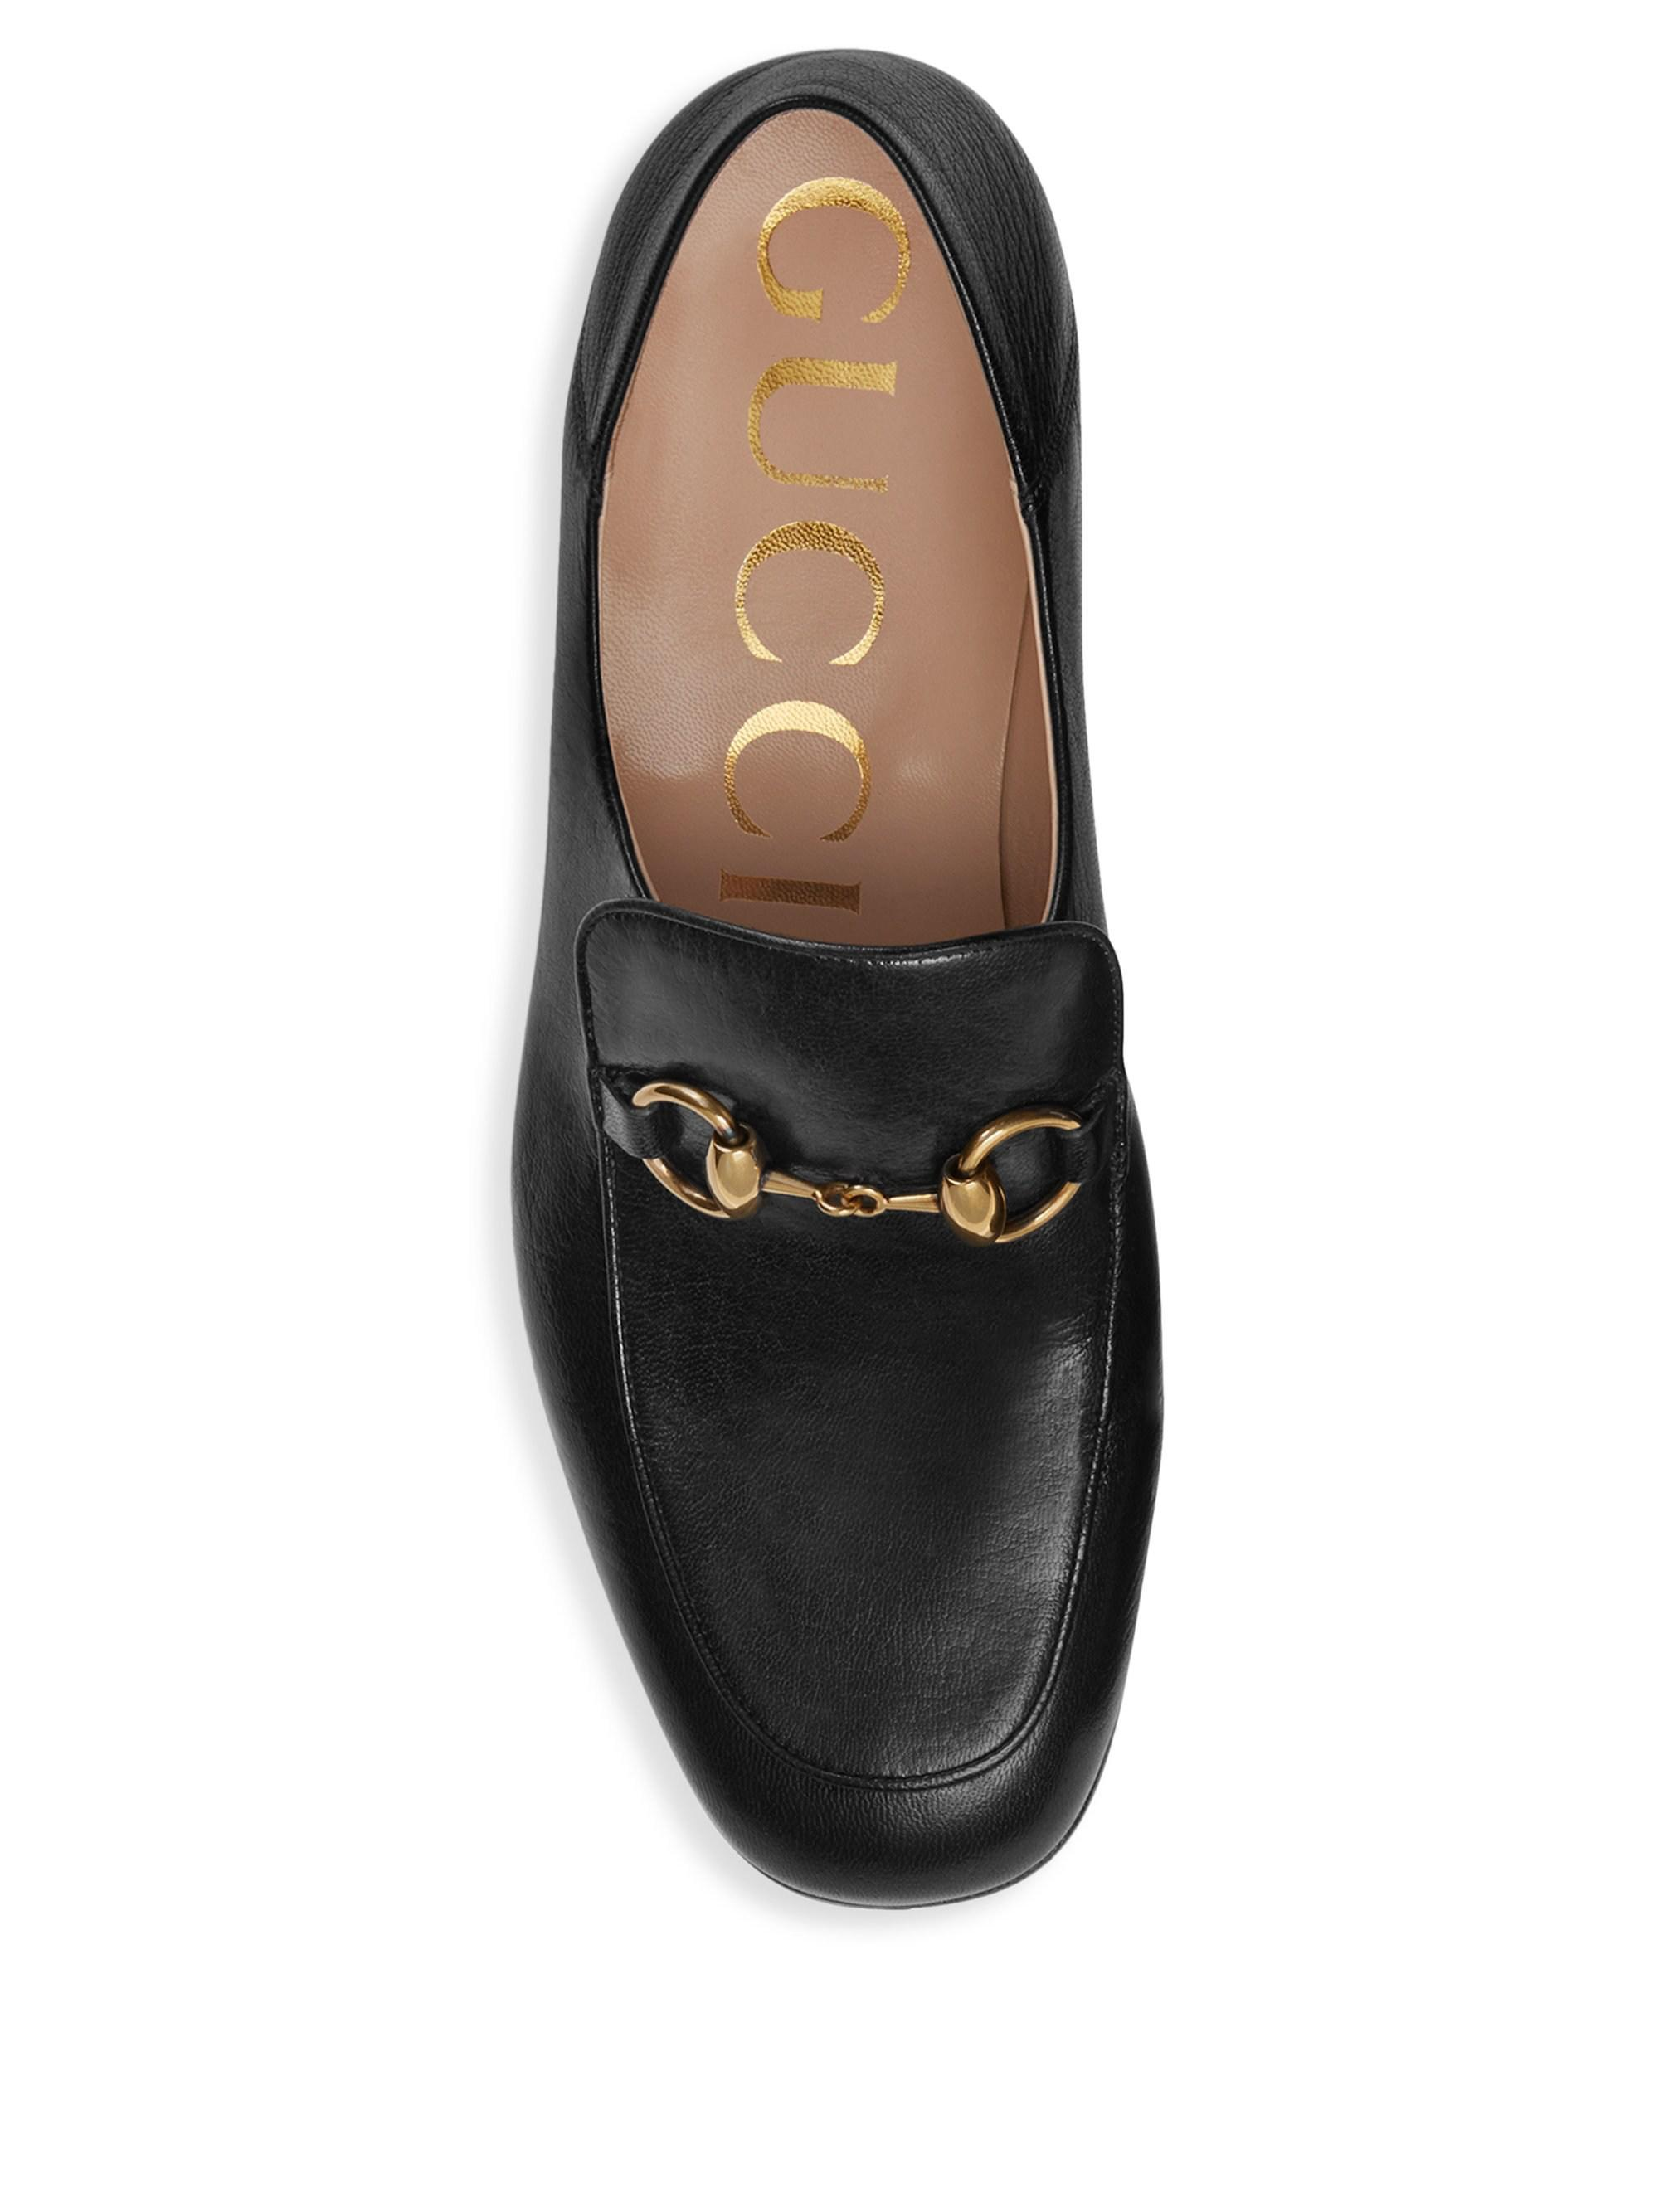 828e72508c3 Gucci Horsebit Leather Crystal Loafers in Black - Lyst